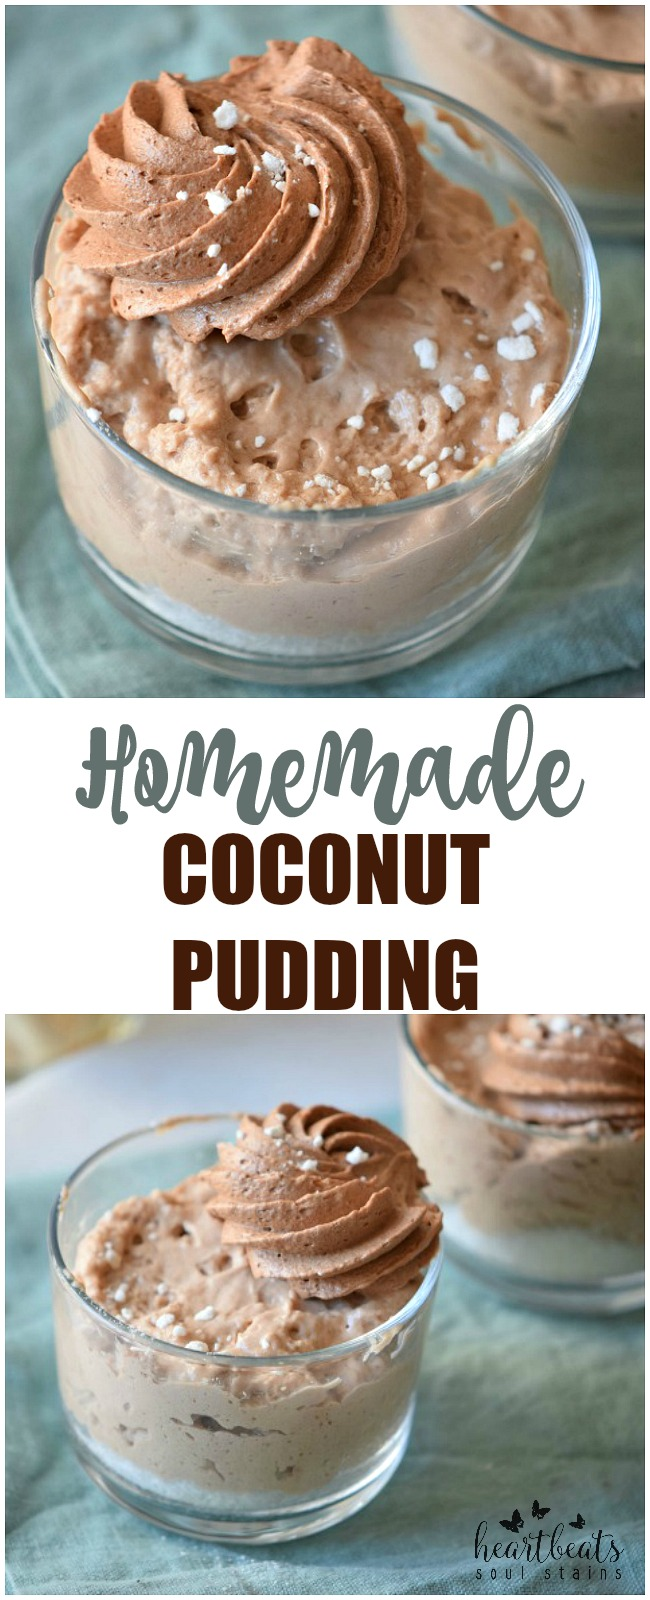 Coconut Pudding is a perfect treat for anyone looking for a tasty tropical treat! I love adding coconut to recipes, and this one is a favorite!